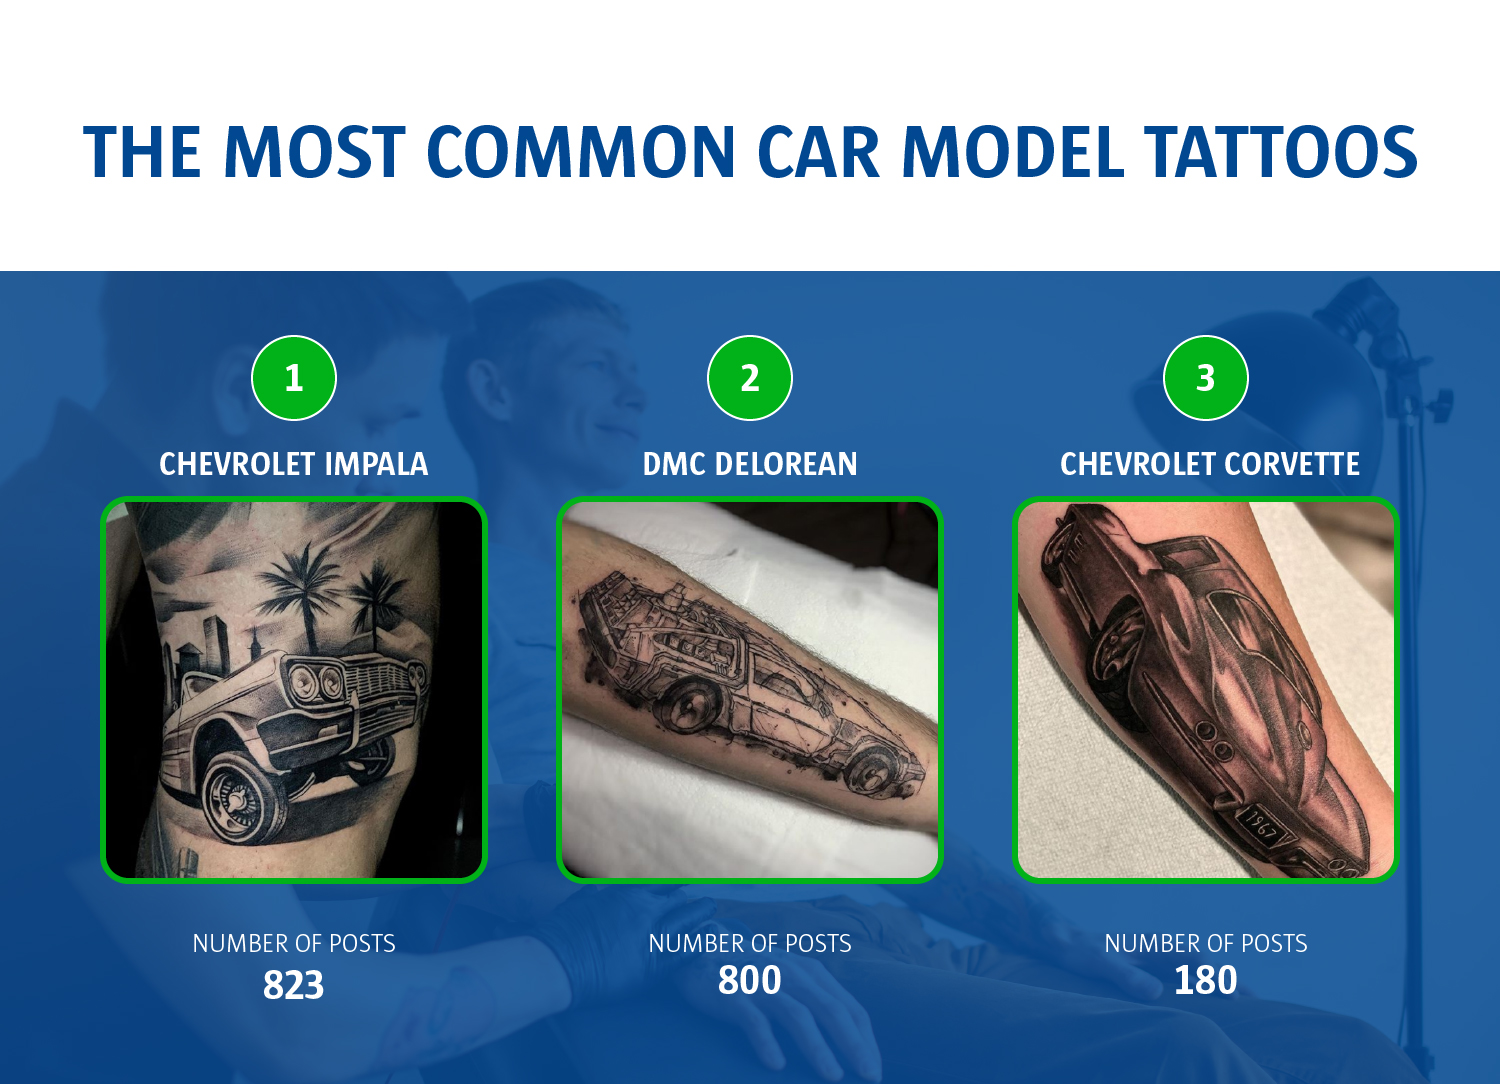 The most common car model tattoos